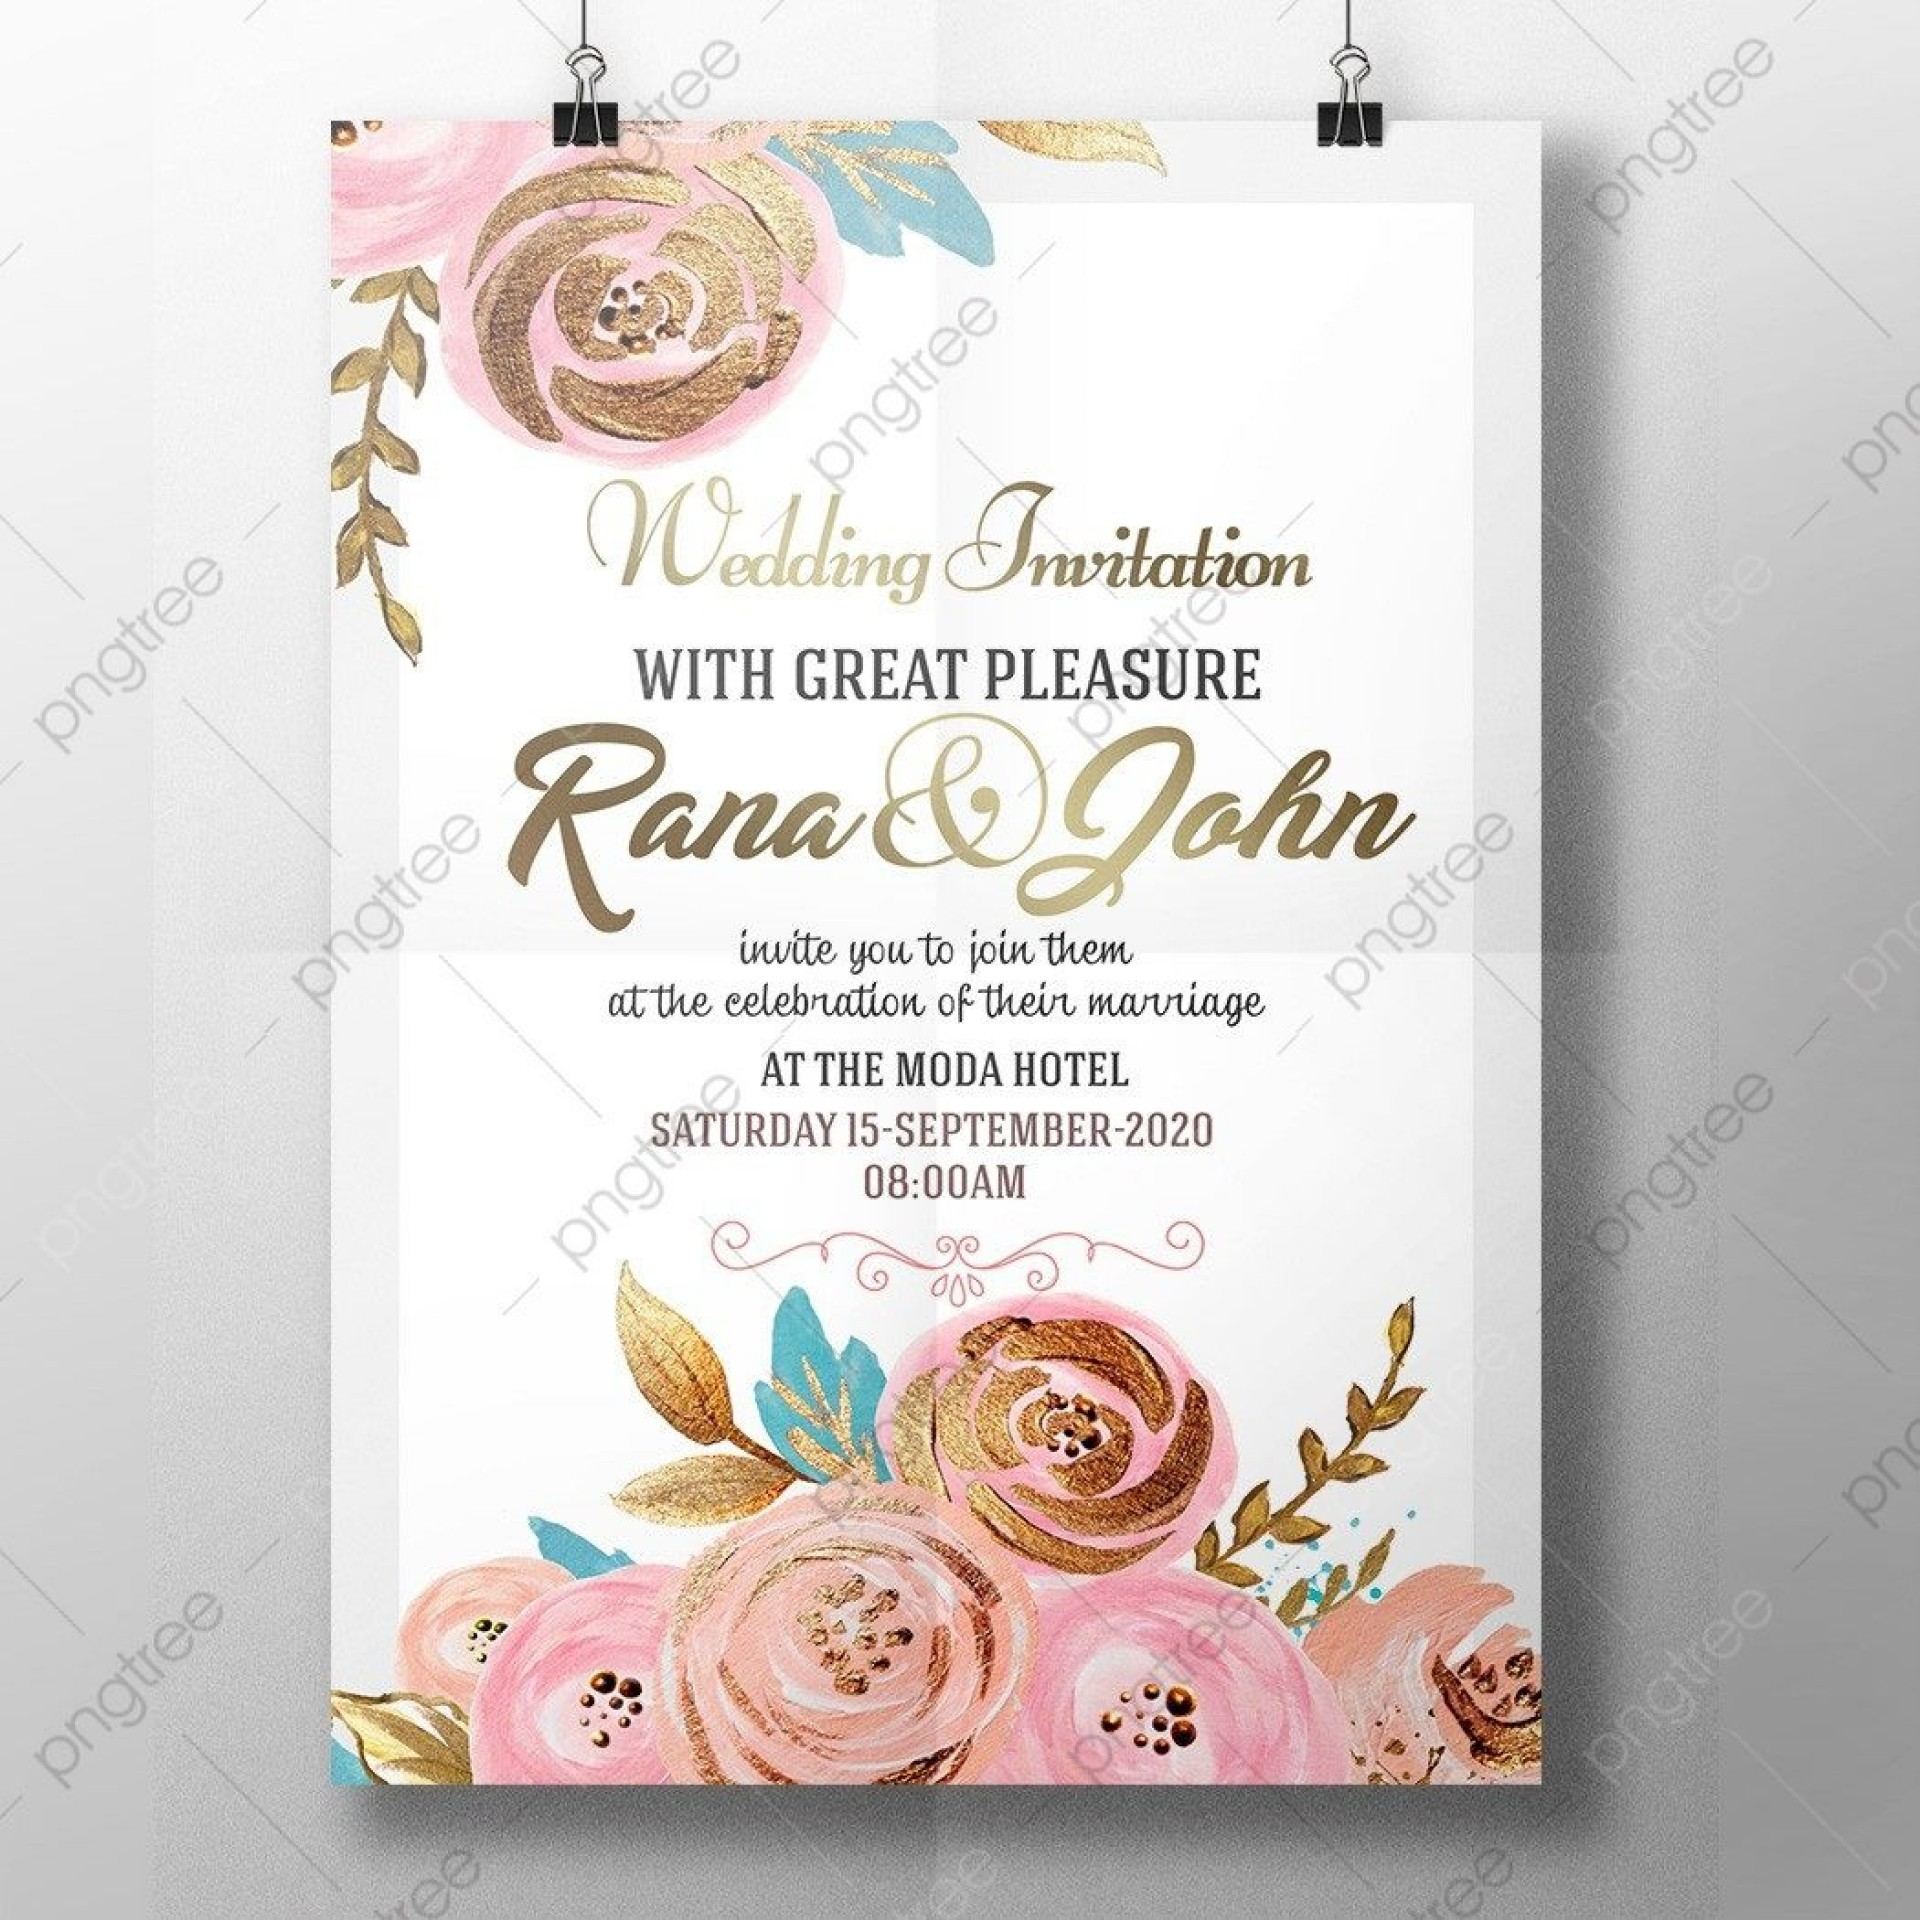 005 Wondrou Free Download Marriage Invitation Template High Definition  Card Design Psd After Effect1920